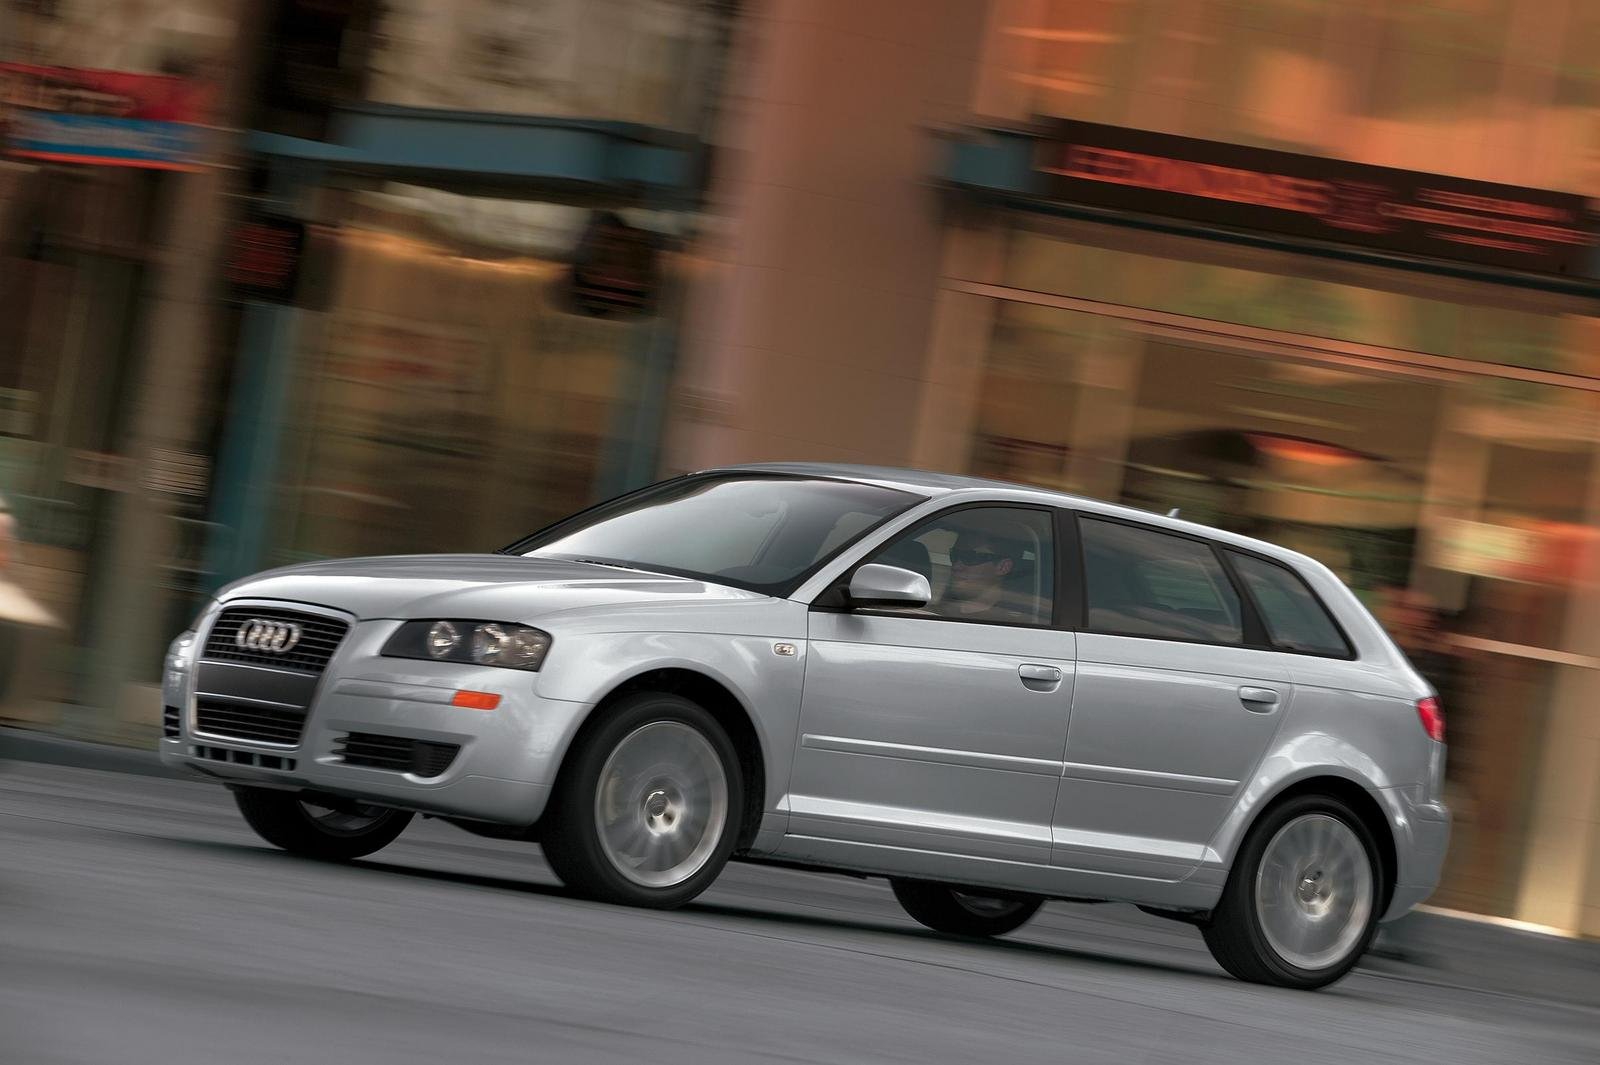 2007 audi a3 picture 99749 car review top speed. Black Bedroom Furniture Sets. Home Design Ideas